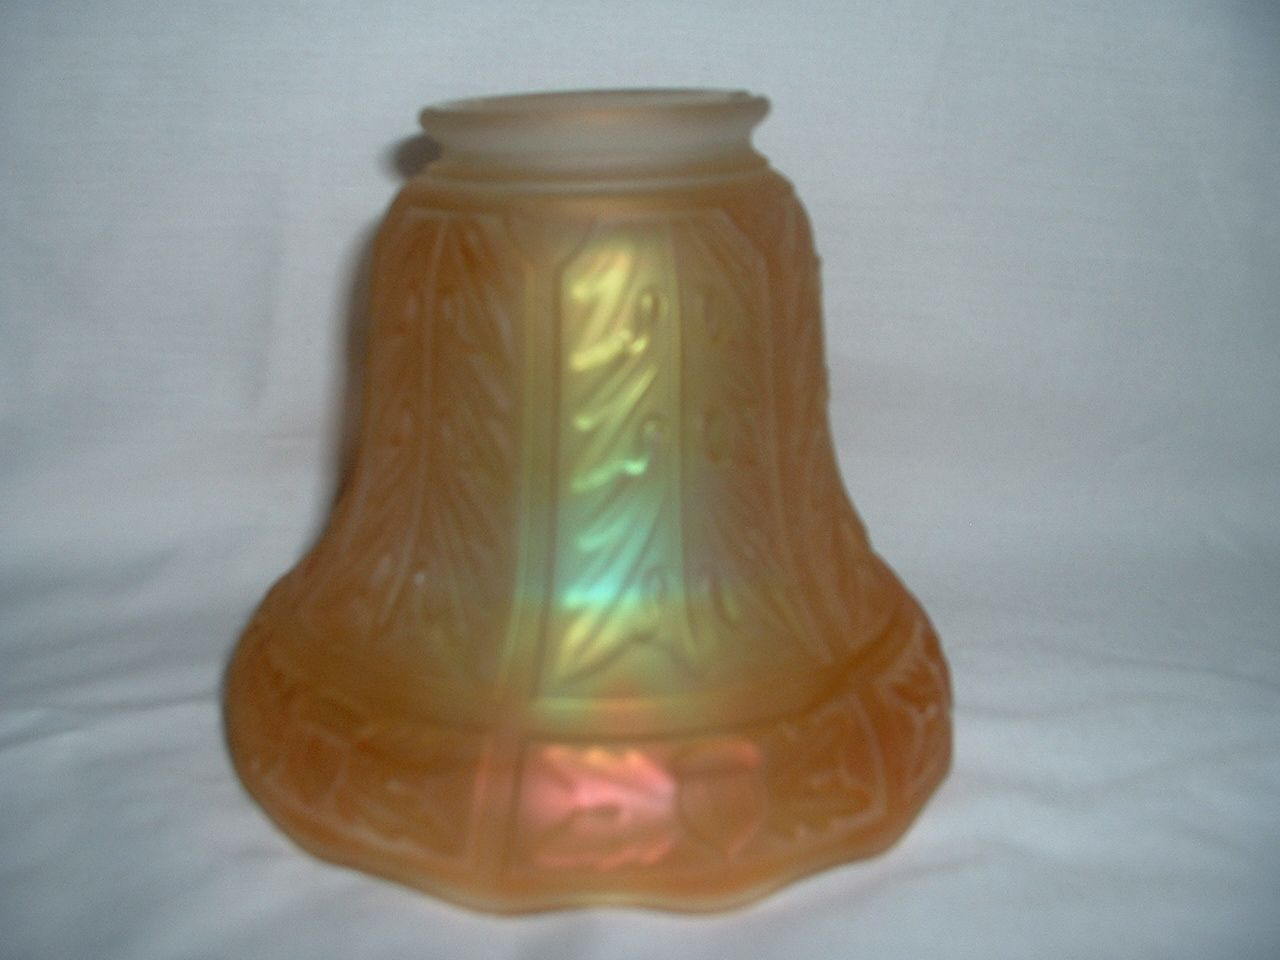 Delightful Antique Glassware | Vintage Glass Shades   Vintage Replacement Glass Lamp  Shades For Your .